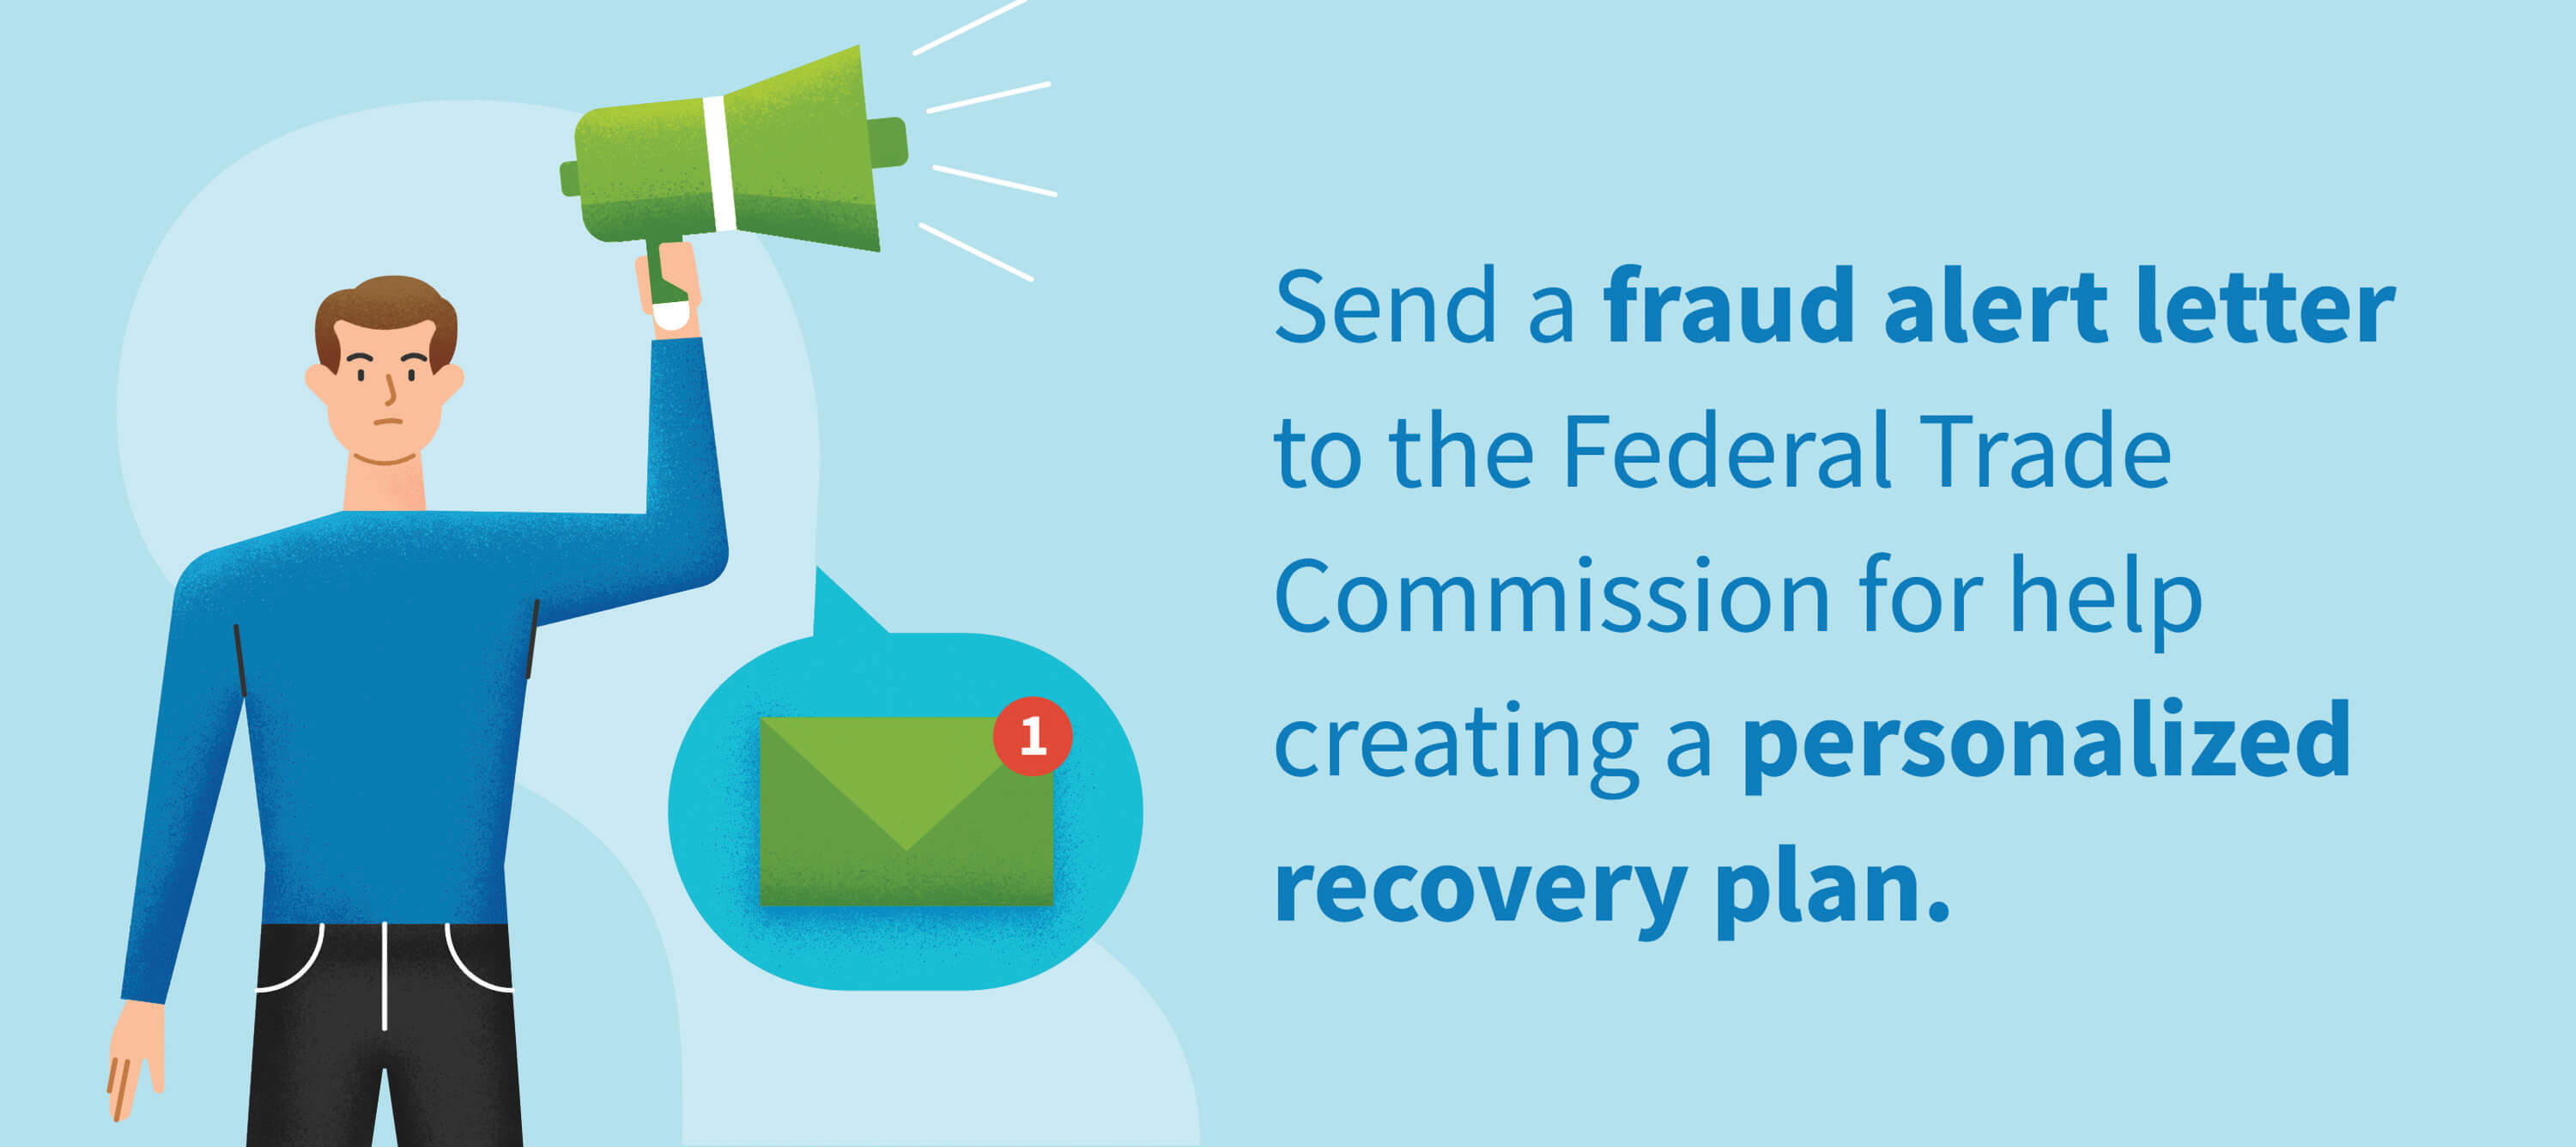 Send a fraud alert letter to the Federal Trade Comission for help creating a personalized recovery plan.